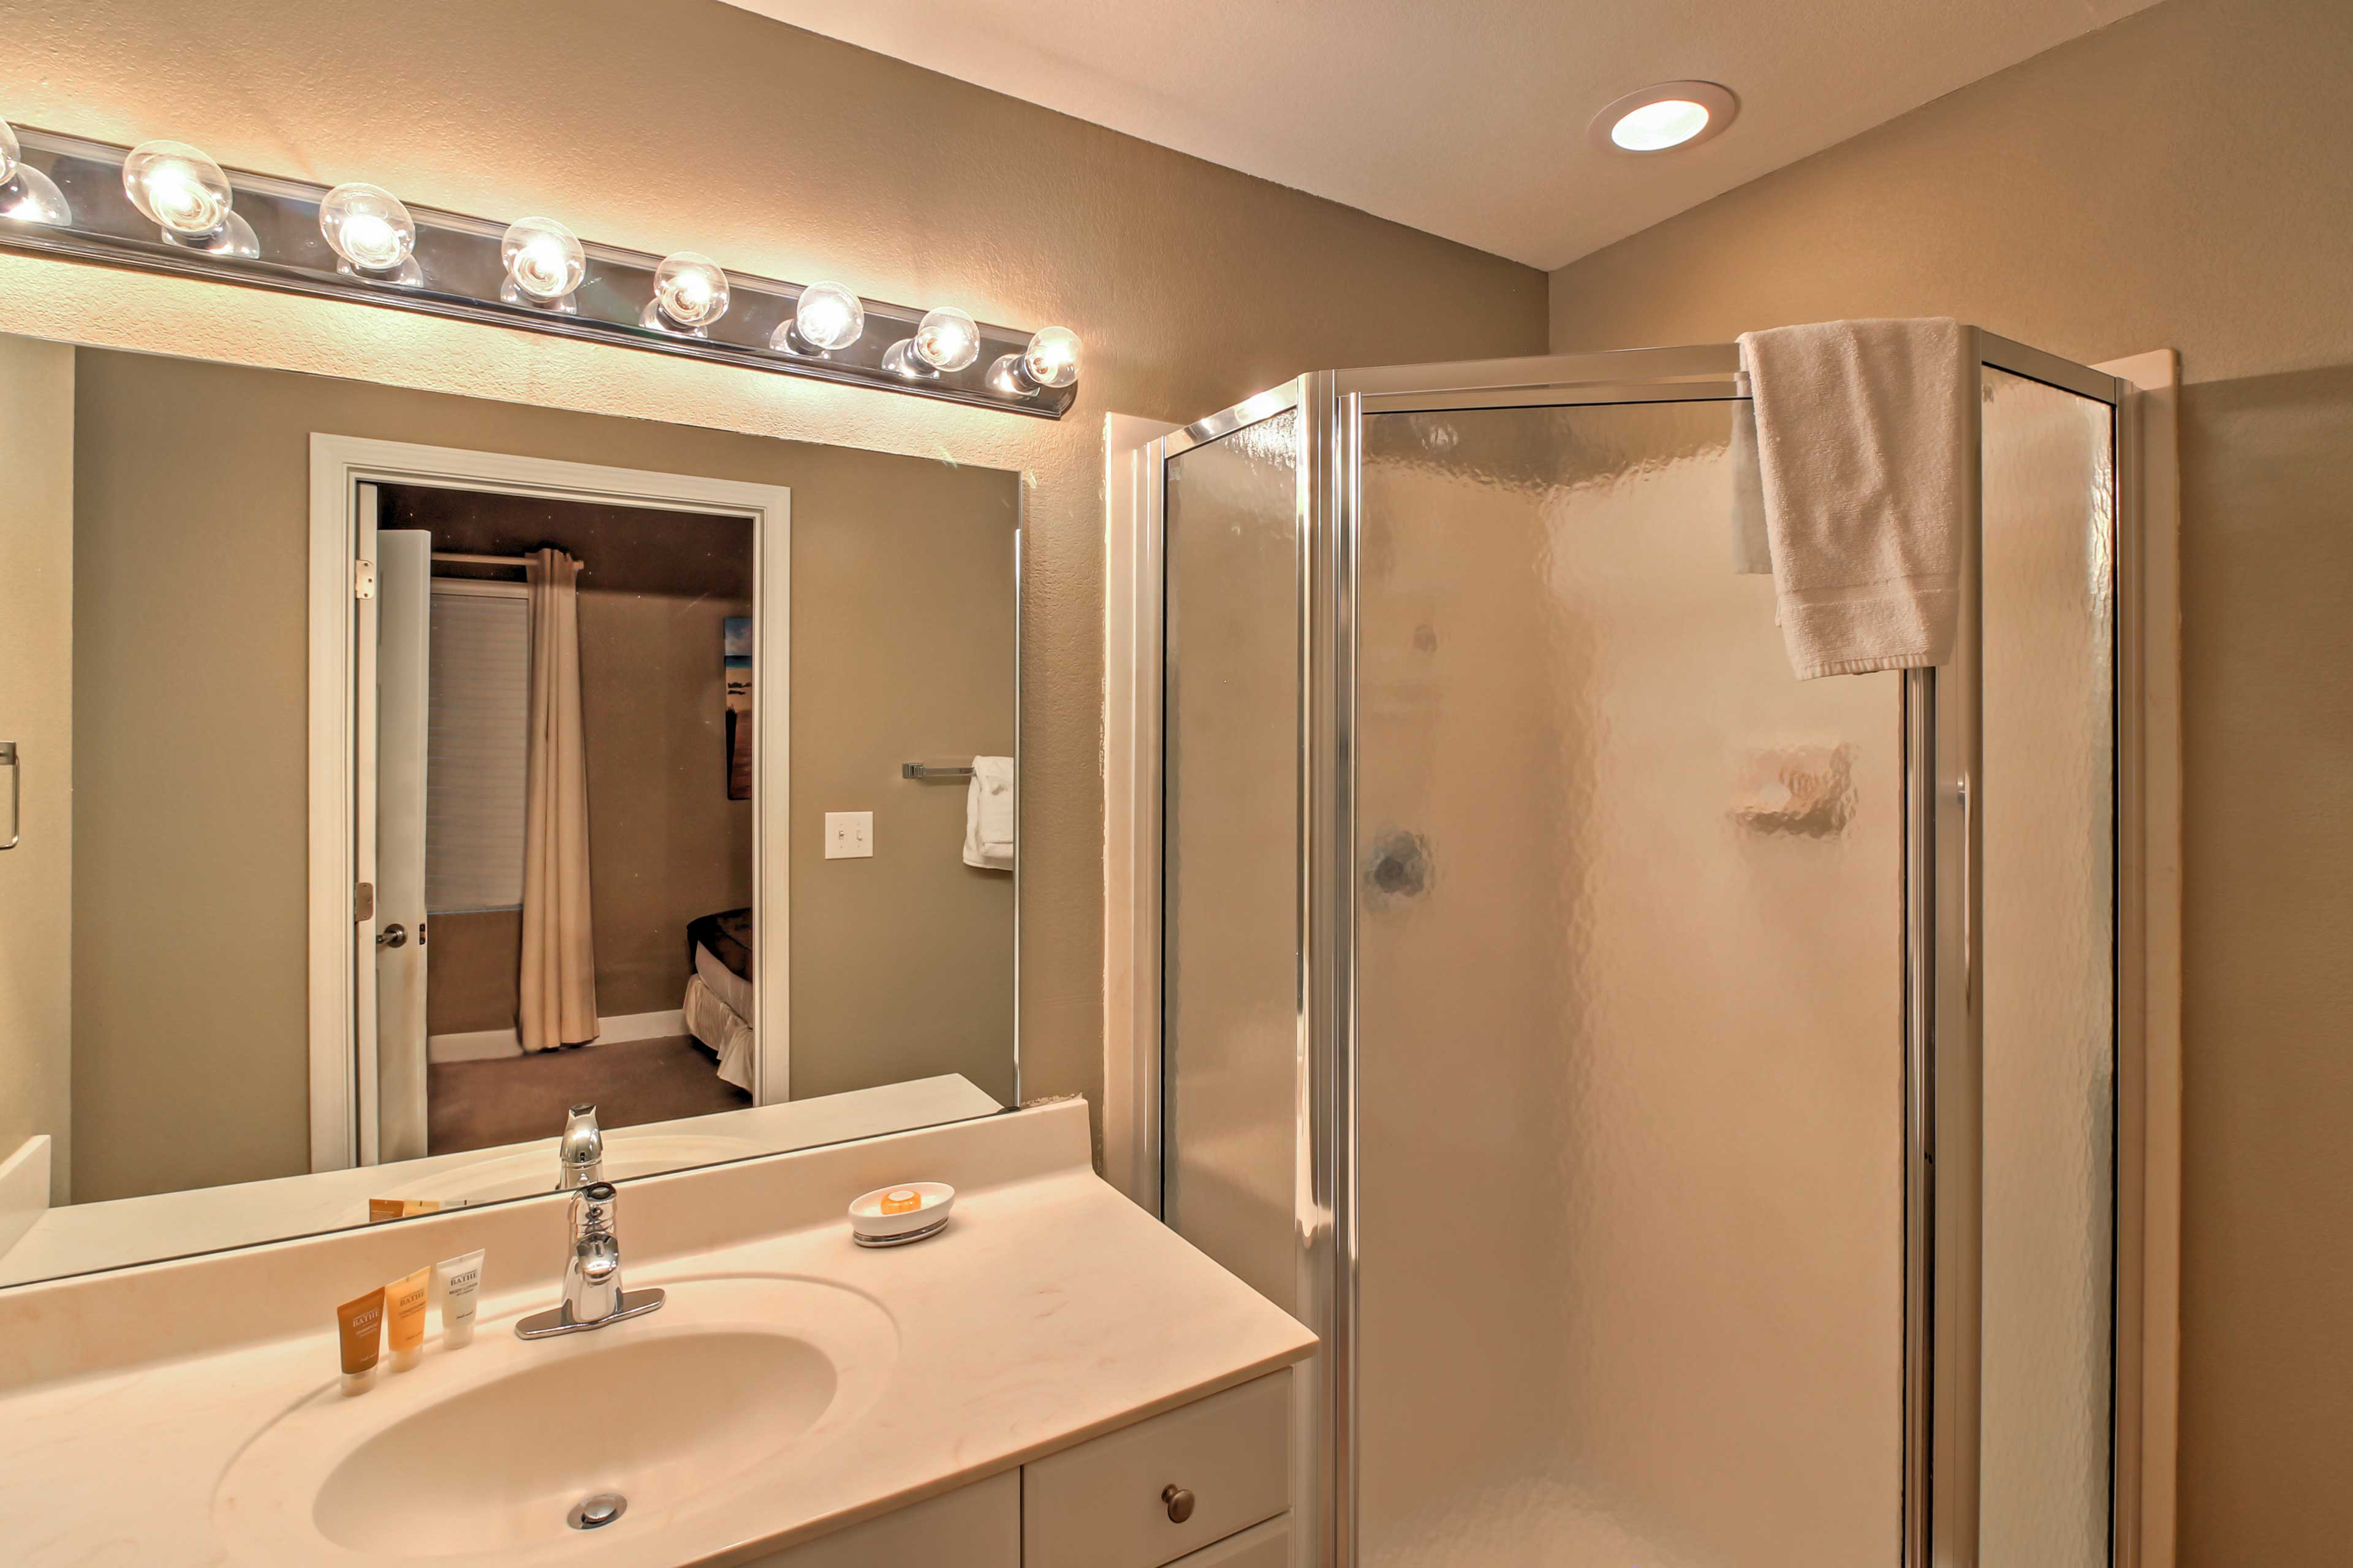 The master bedroom features an en suite bathroom with a glass walk-in shower.